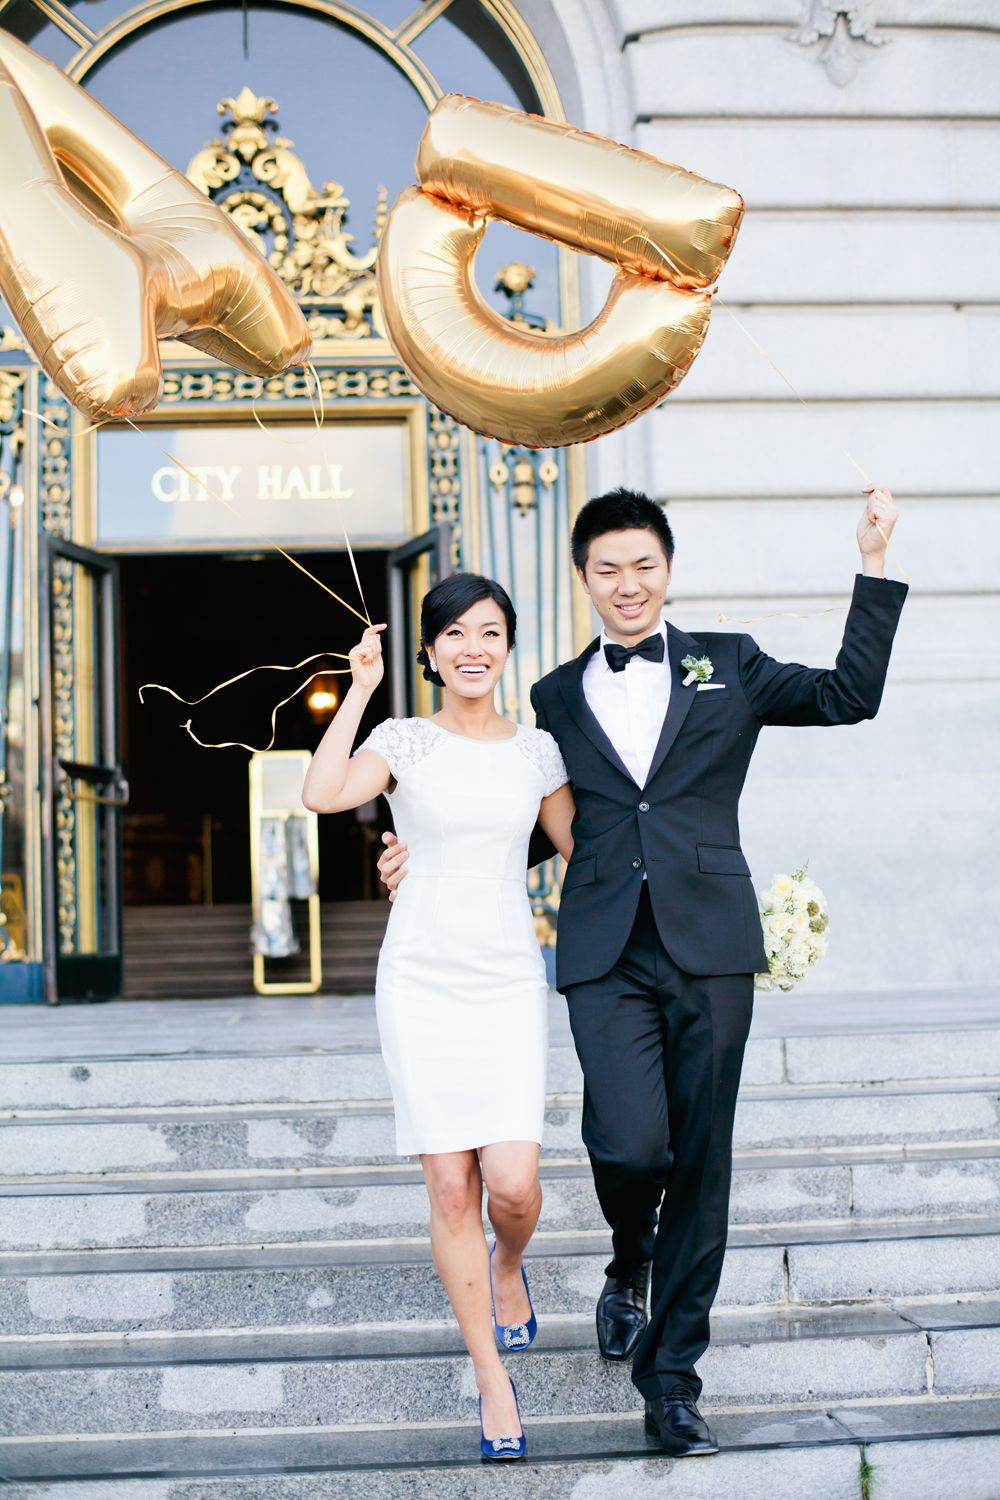 Couple with gold monogram balloons couples short wedding dresses